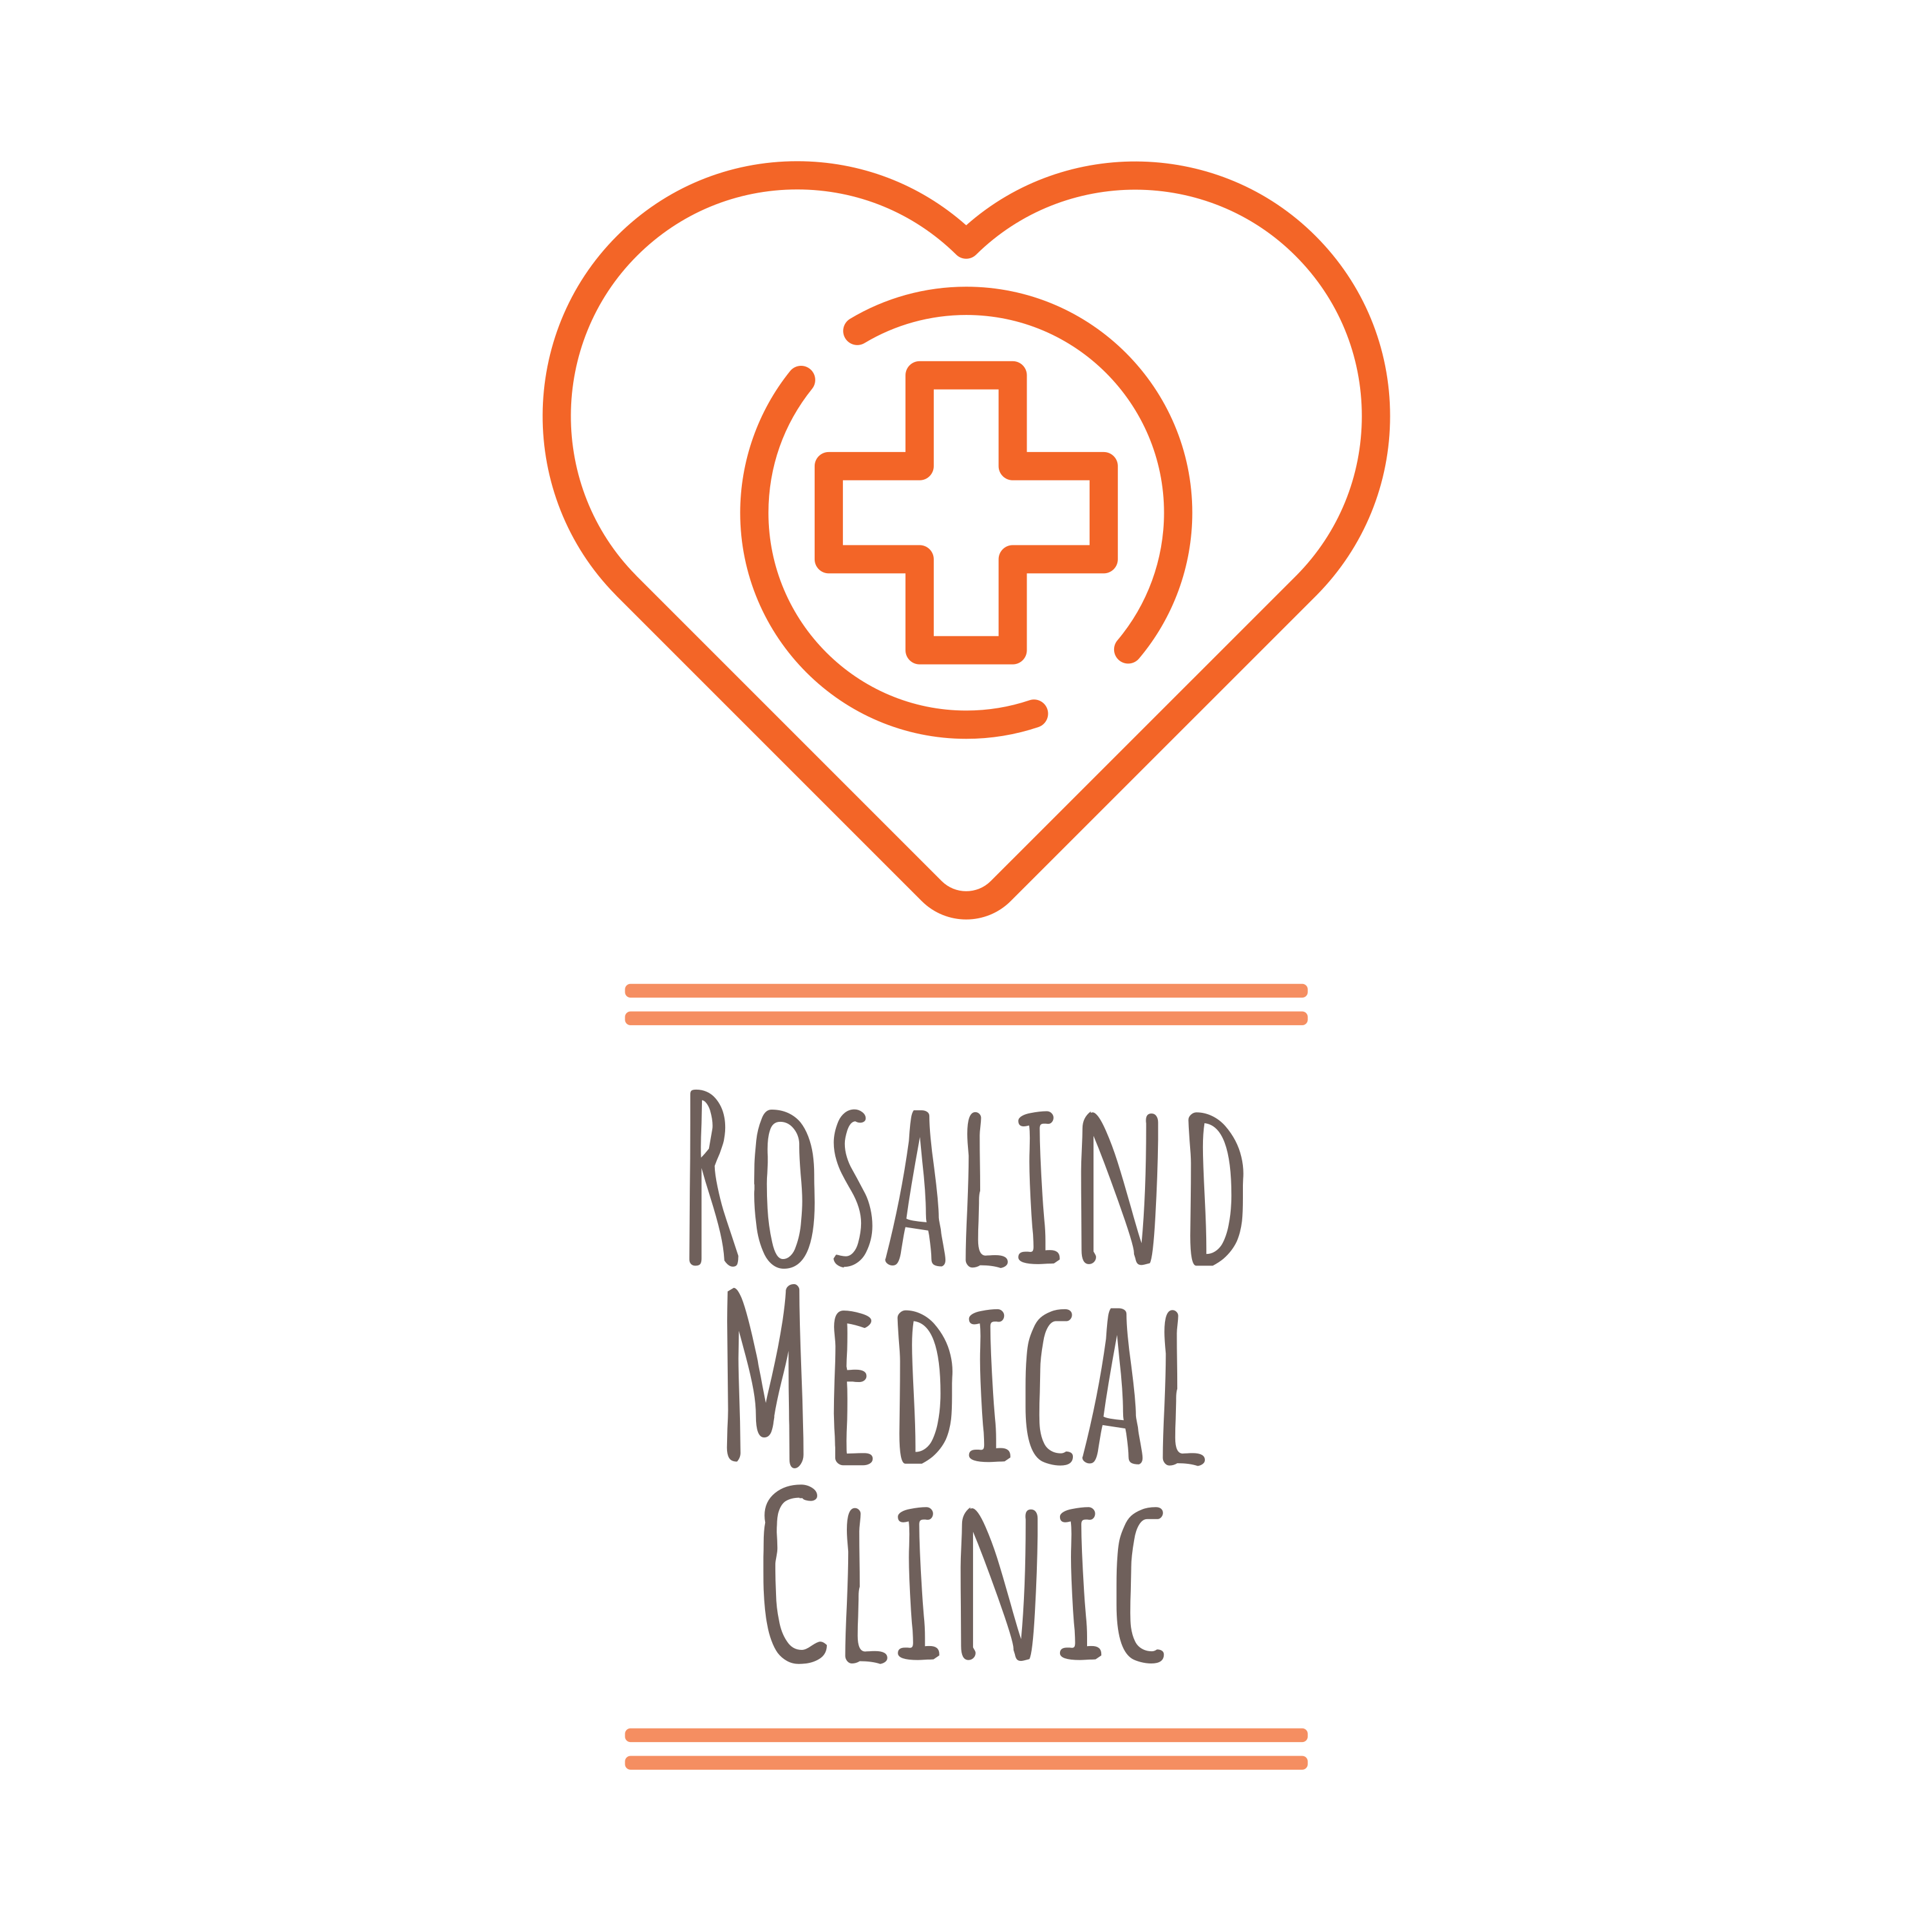 Rosalind Medical Clinic